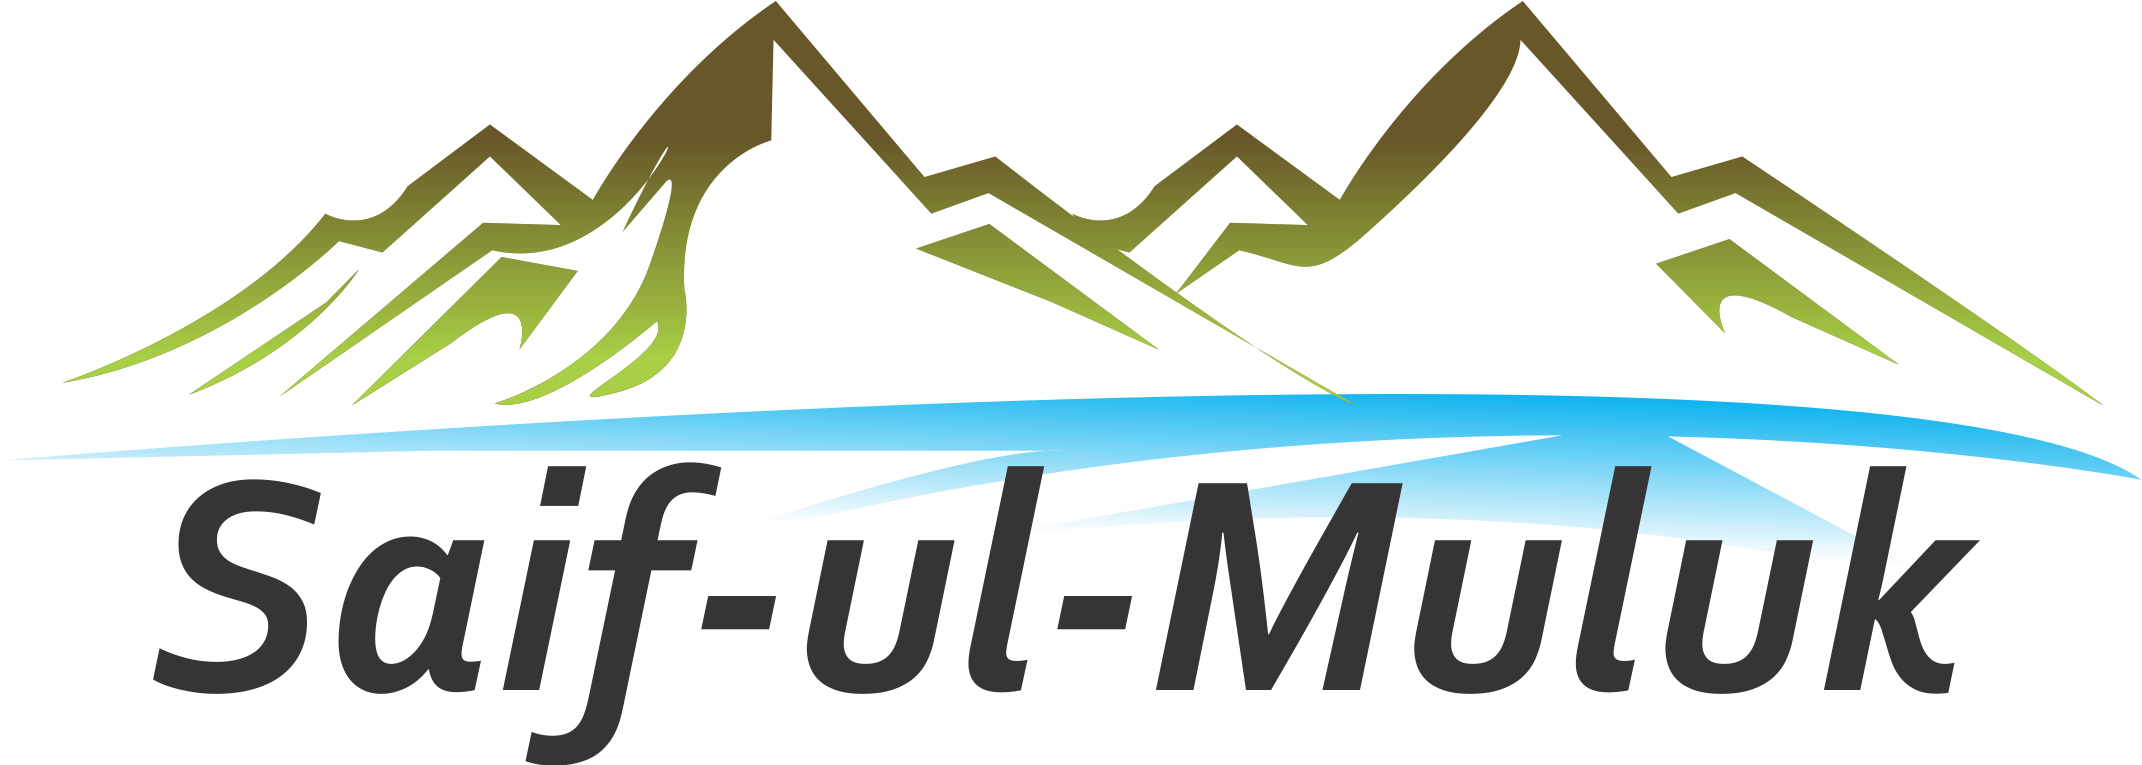 Saif ul Muluk Tour and Travel Company | Saif-Ul-Muluk | pakistan Archives - Saif ul Muluk Tour and Travel Company | Saif-Ul-Muluk